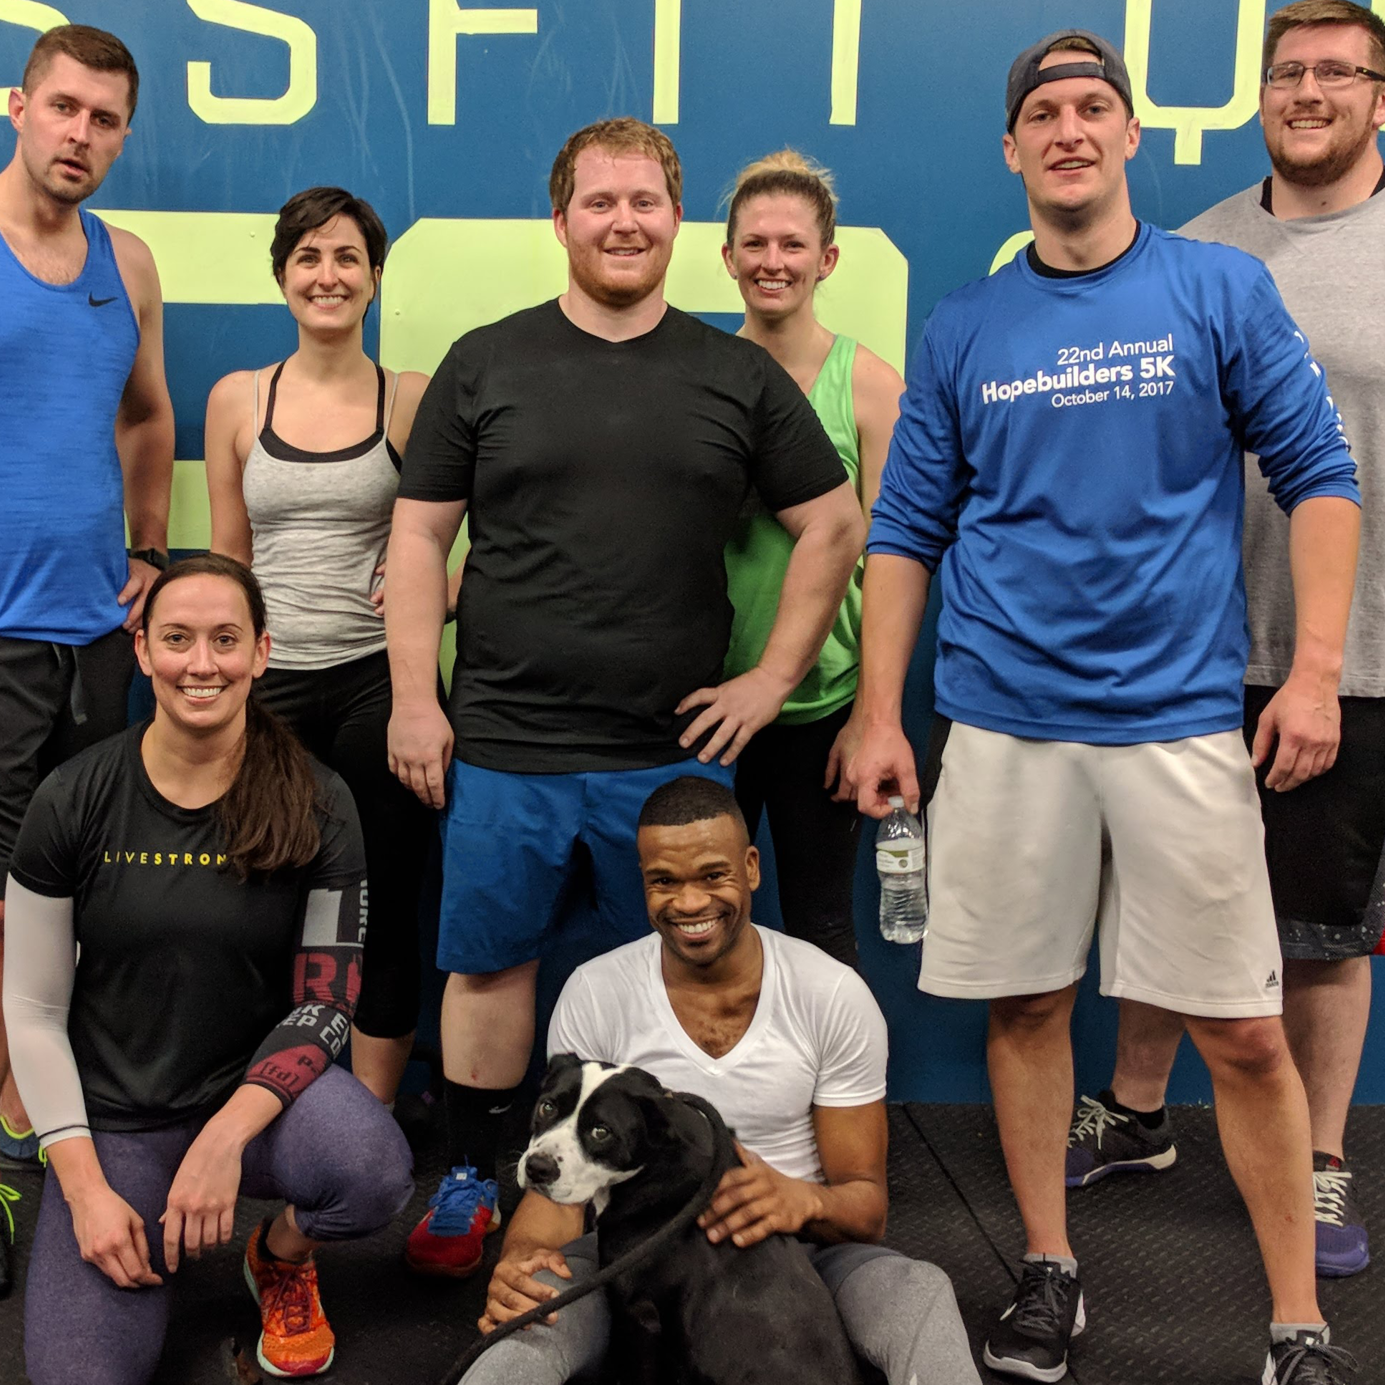 Total Body Fitness - At CrossFit QC, we use proven methods to help you develop every aspect of your fitness. Get stronger, faster, more flexible, and everything in between.